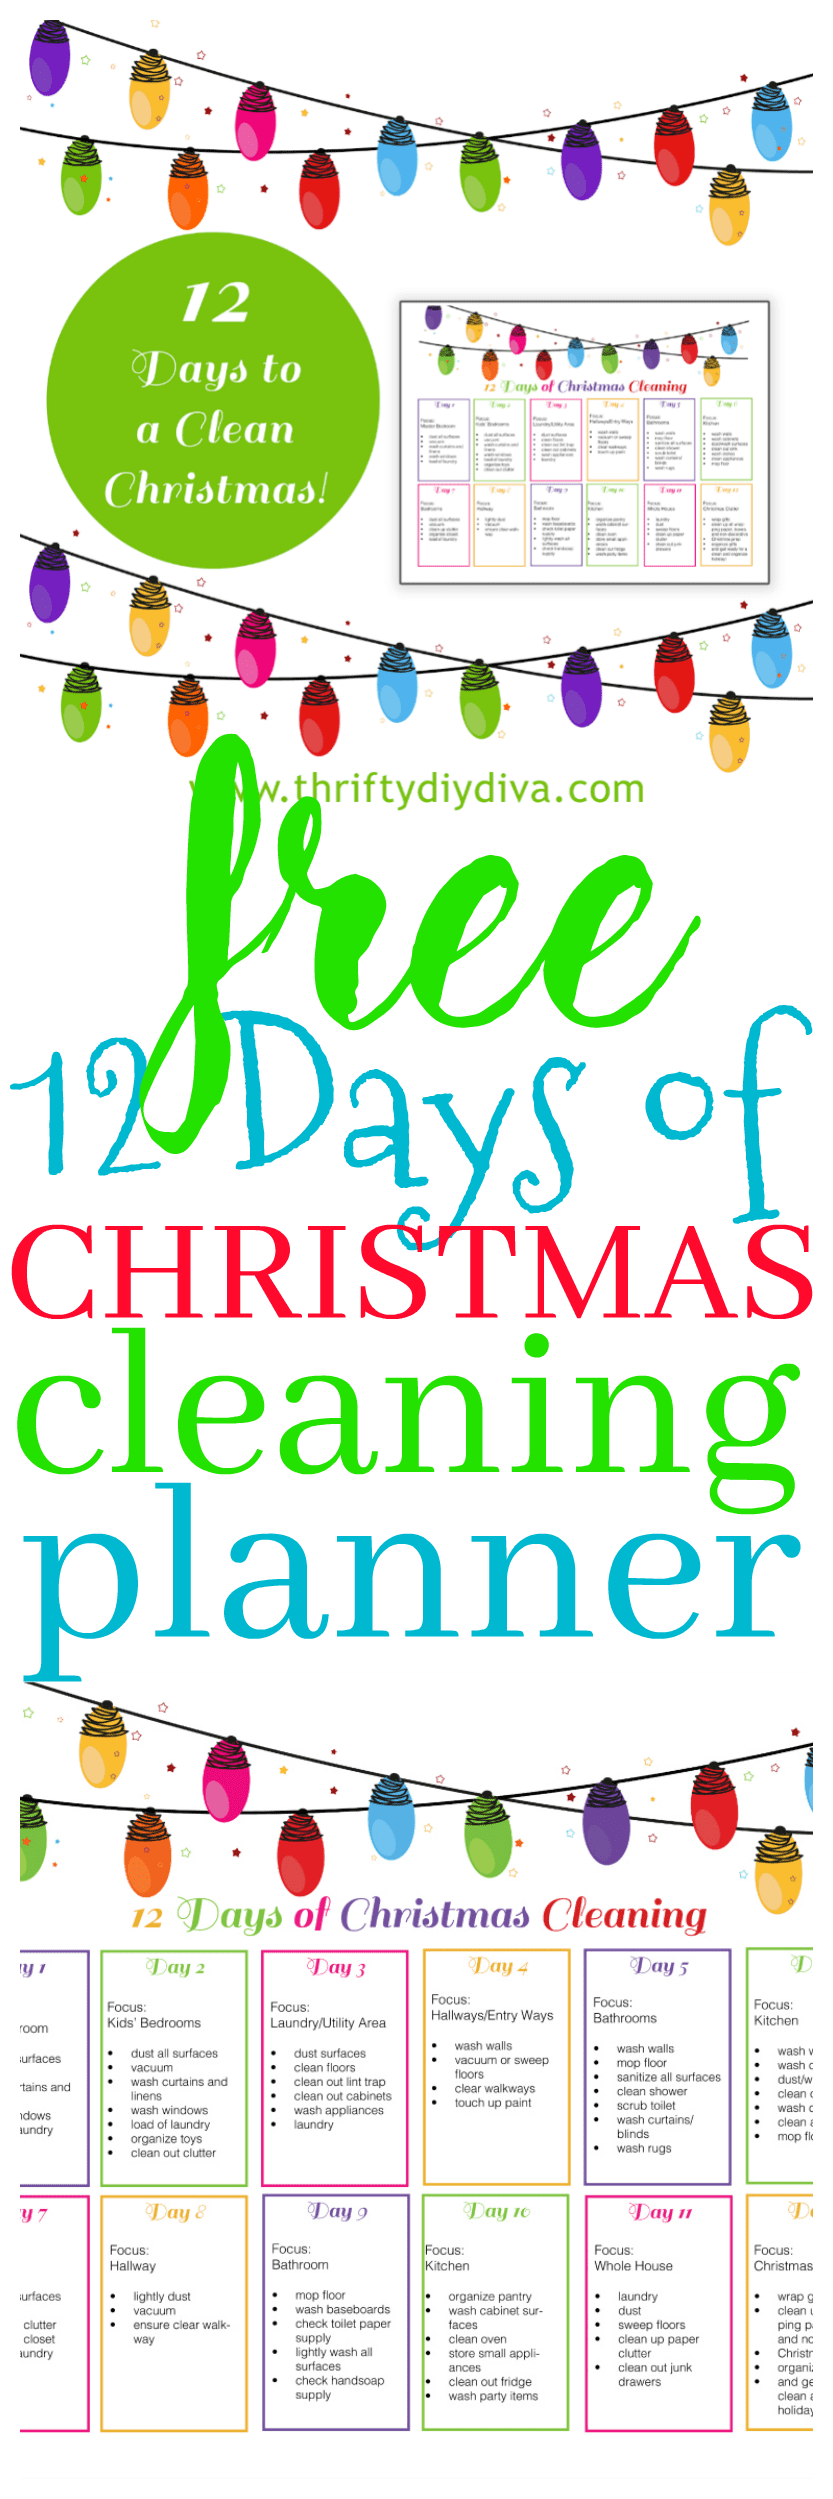 12 Days of Christmas House Cleaning Planner Hacks + Tips